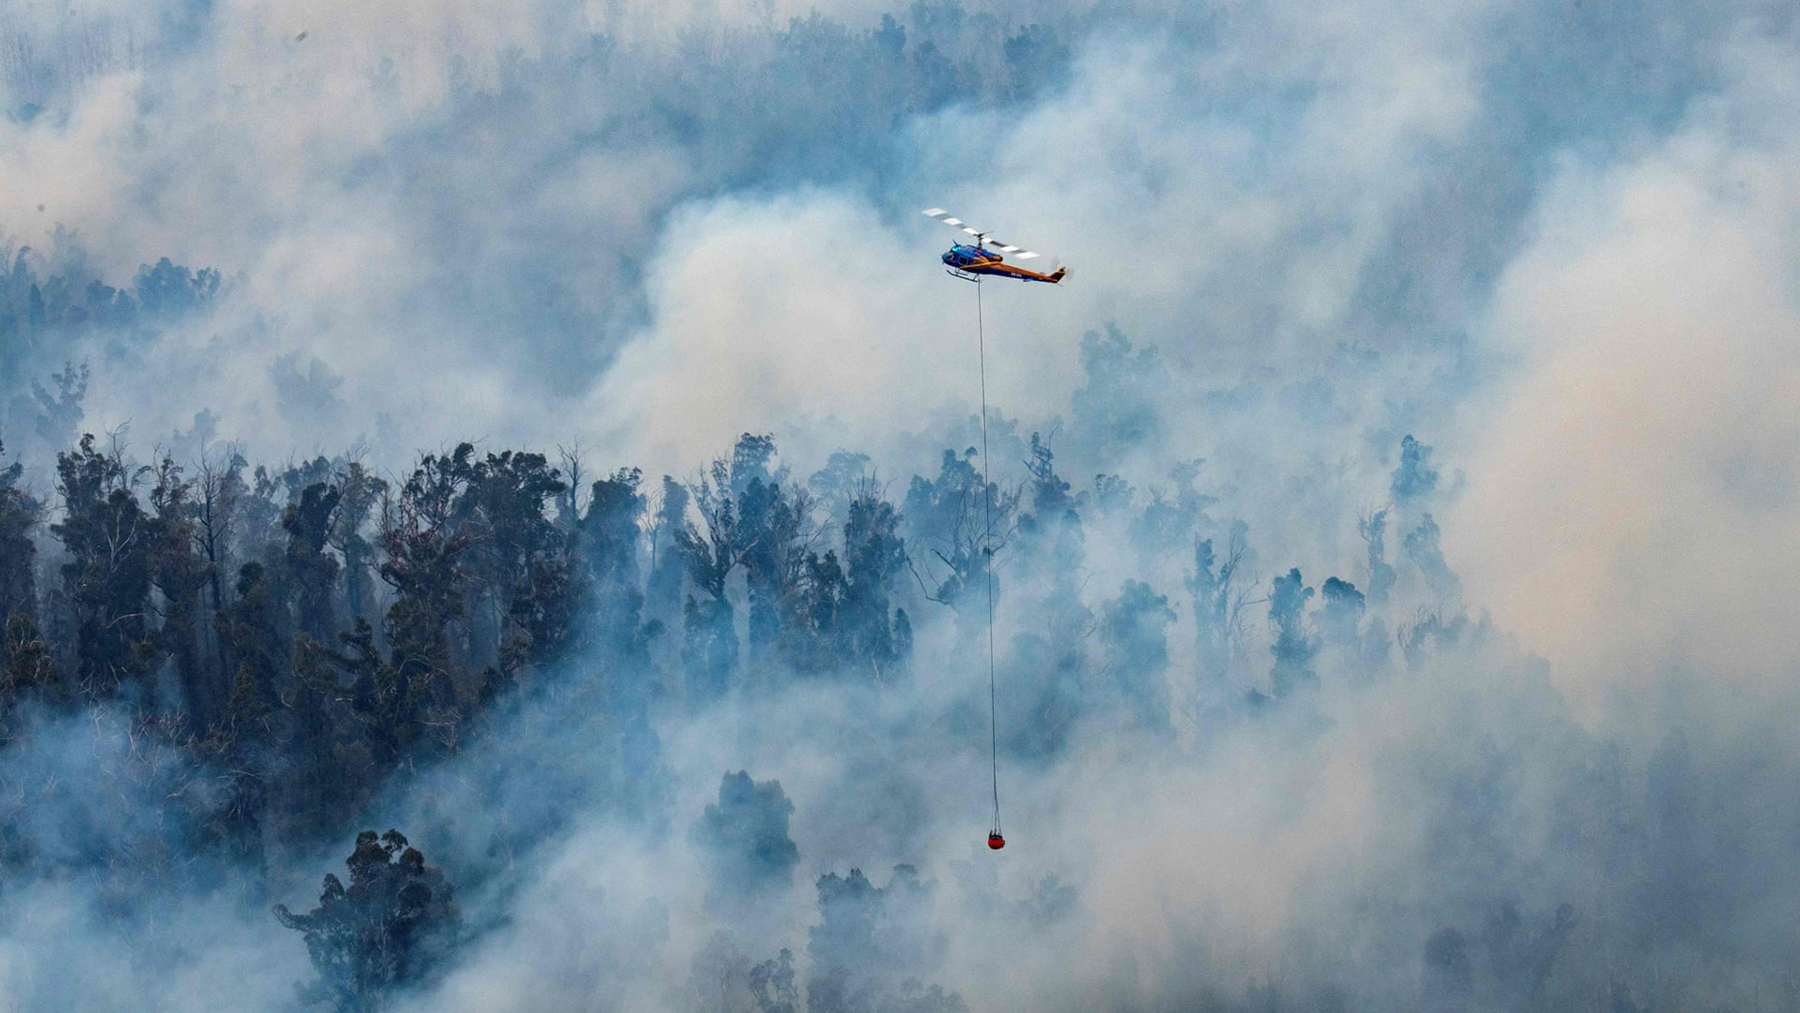 A helicopter dumps water on a fire in Victoria's East Gippsland region on Dec. 30, 2019. Fires have continued to rage in Australia into the New Year, causing fatalities and compromising air quality. (Photo courtesy of the Department of Environment, Land, Water and Planning)